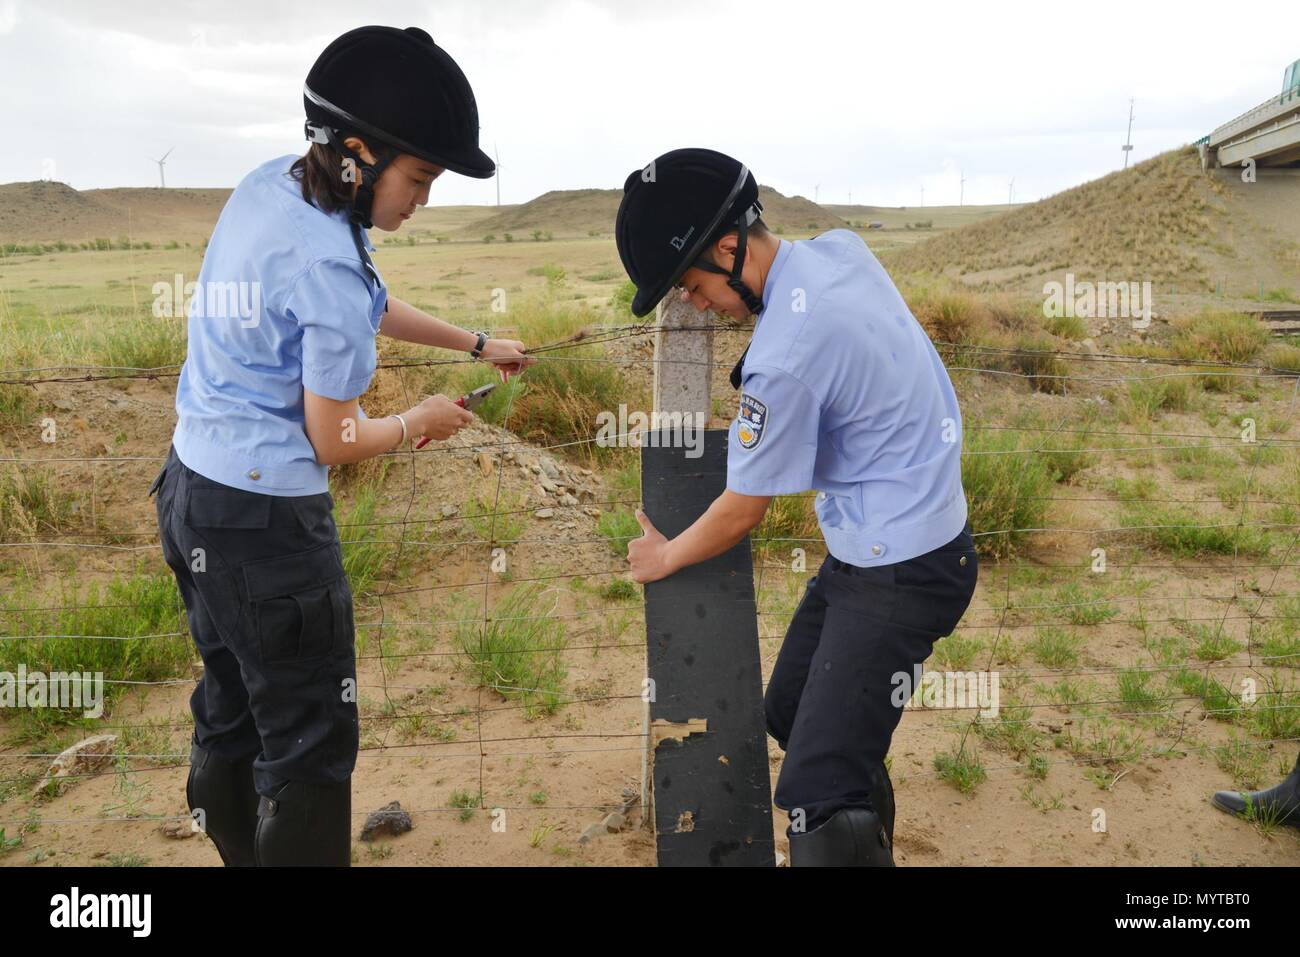 (180608) -- XILINHOT, June 8, 2018 (Xinhua) -- Mounted police repair broken safety net while patrolling along railroad in Xilinhot, north China's Inner Mongolia Autonomous Region, June 7, 2018. In order to keep railroads in operation, mounted police in Xilinhot are busy repairing broken safety net and checking livestock intrusion while patrolling along railroads. (Xinhua/Zou Yu) (wyl) - Stock Image